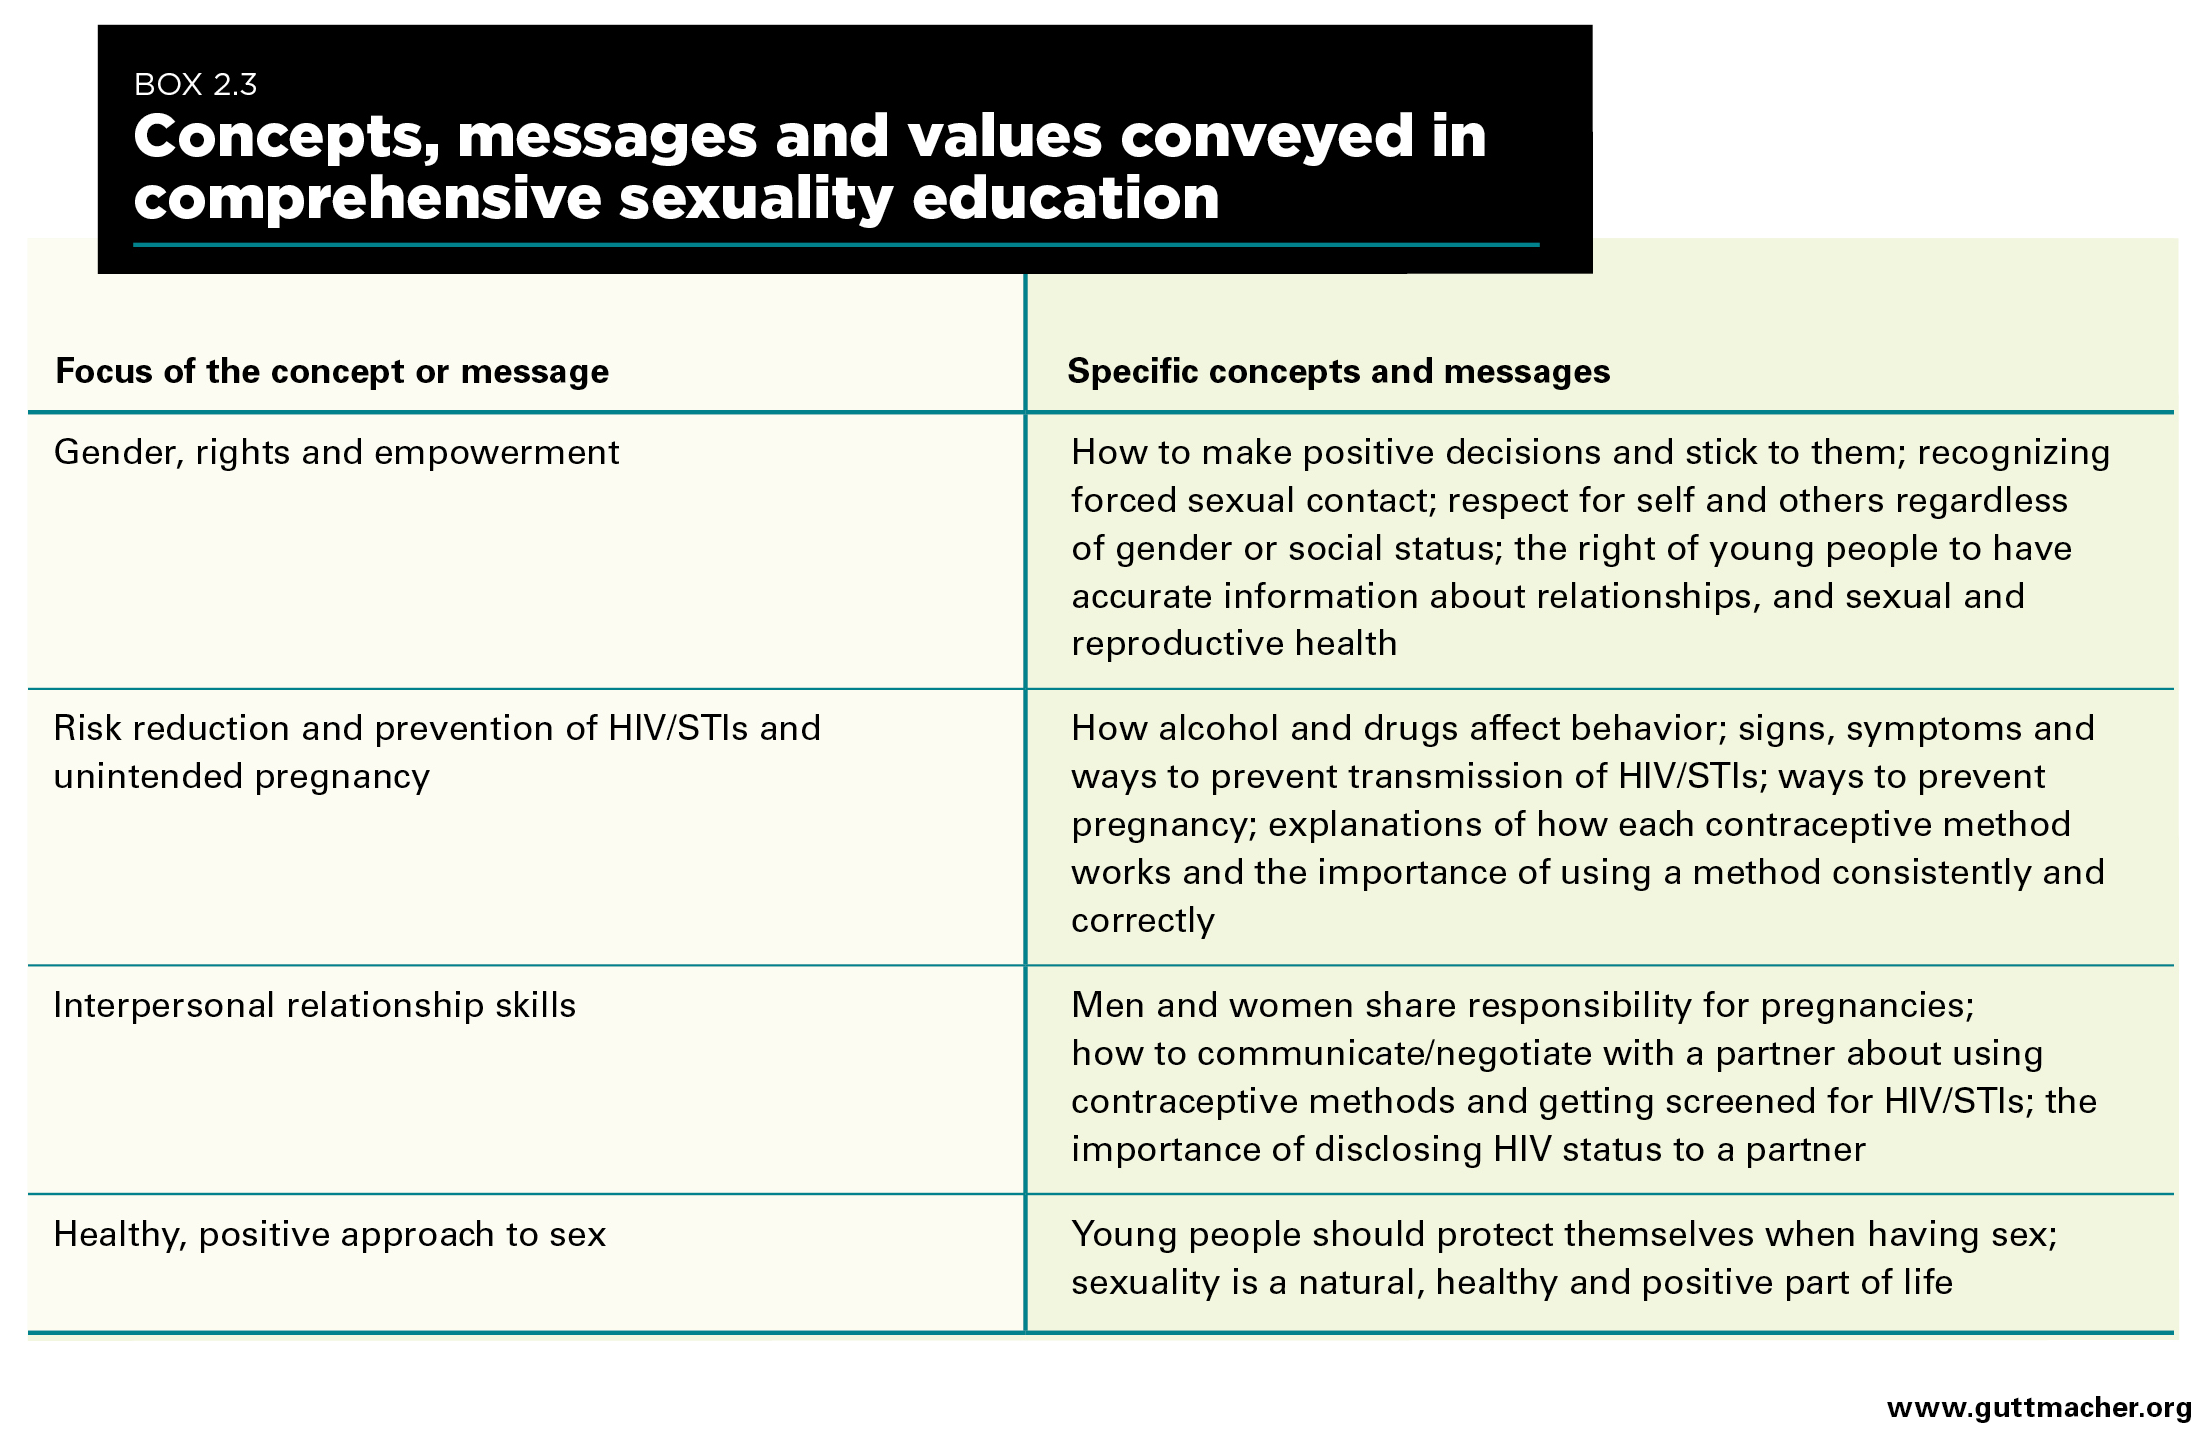 Biological approach to sexuality